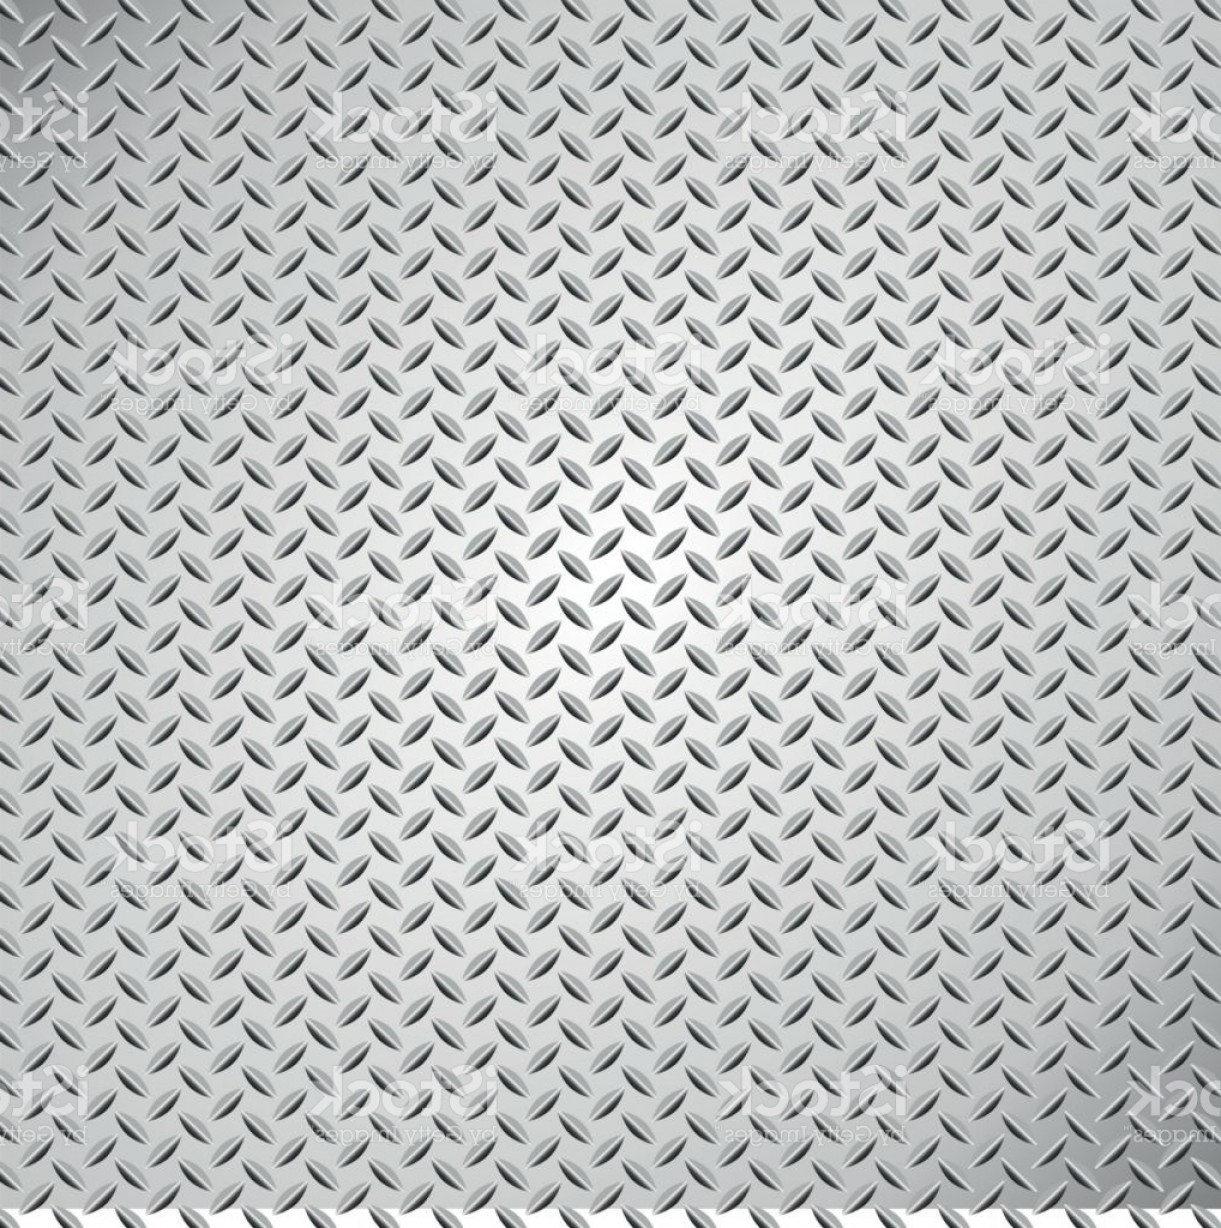 Diamond Plate Vector Pattern: Steel Diamond Plate Texture Background Gm